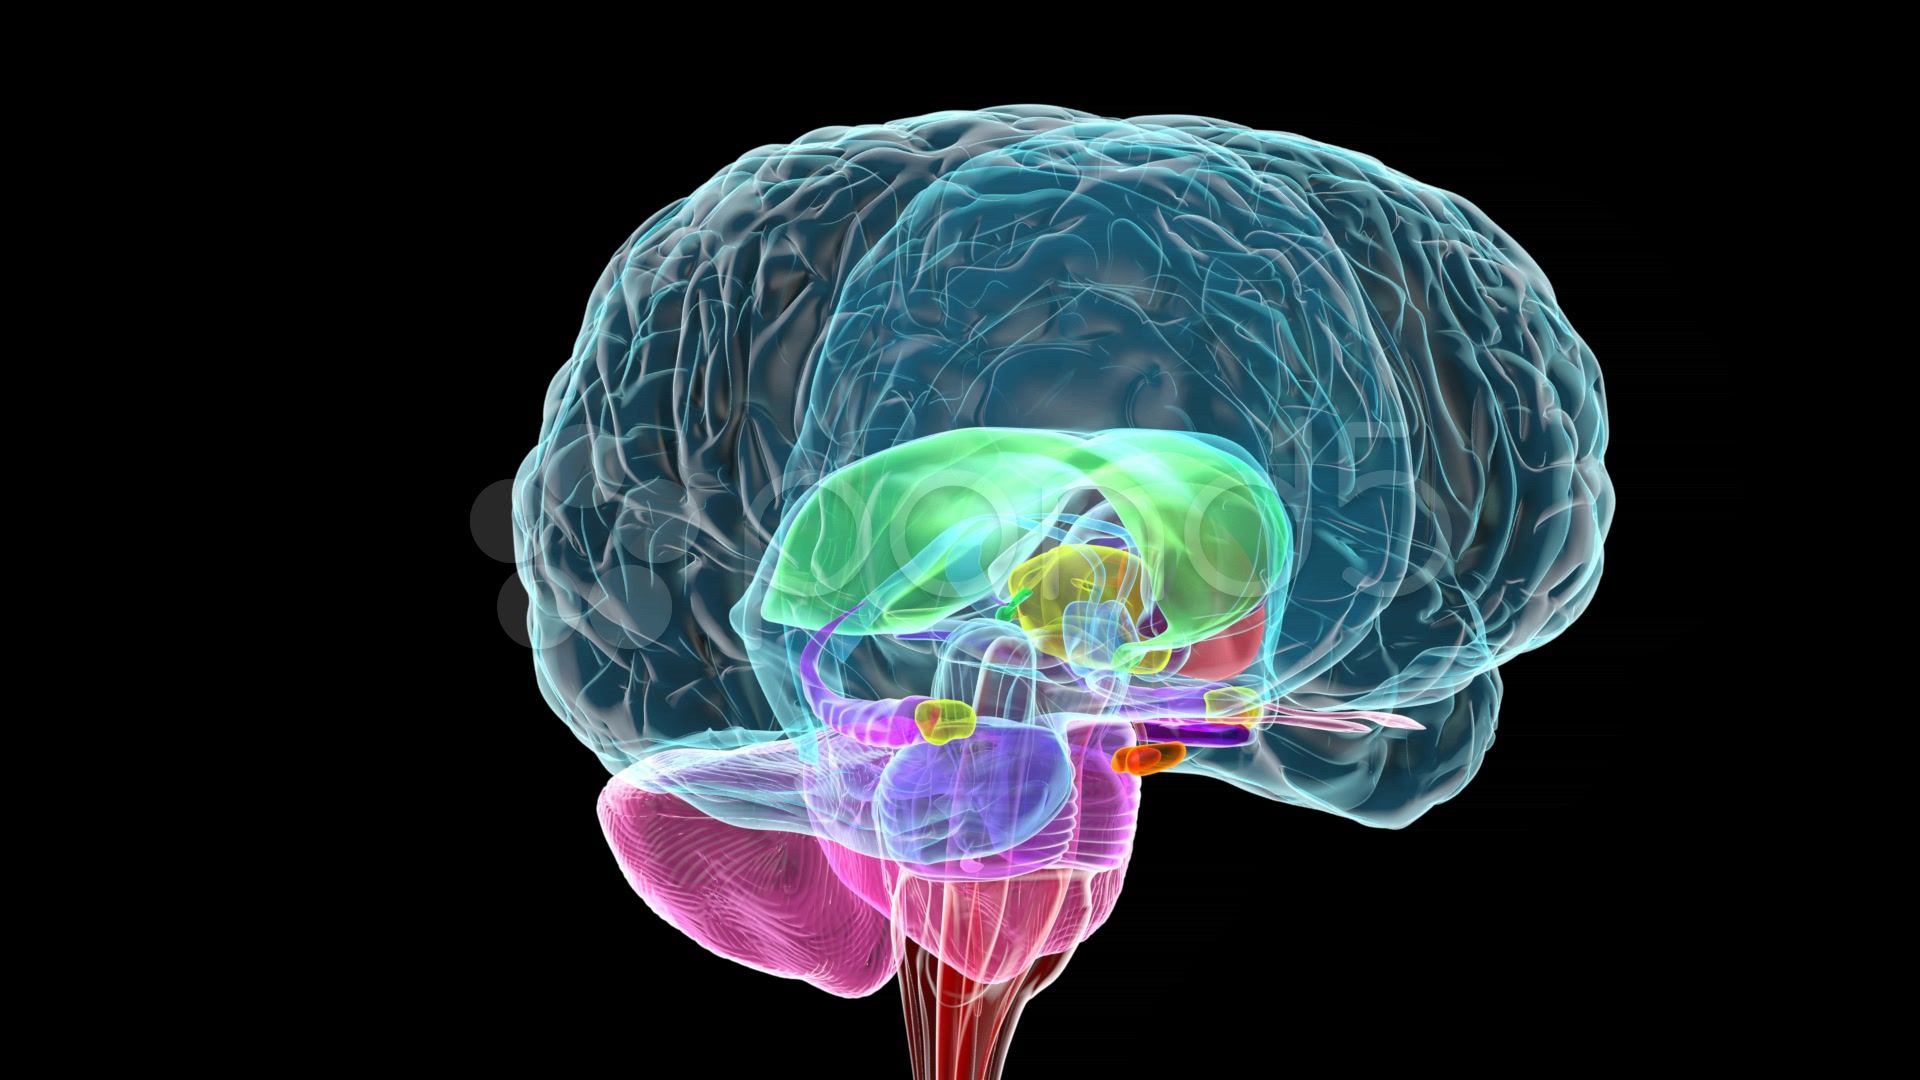 Brain Images Hd